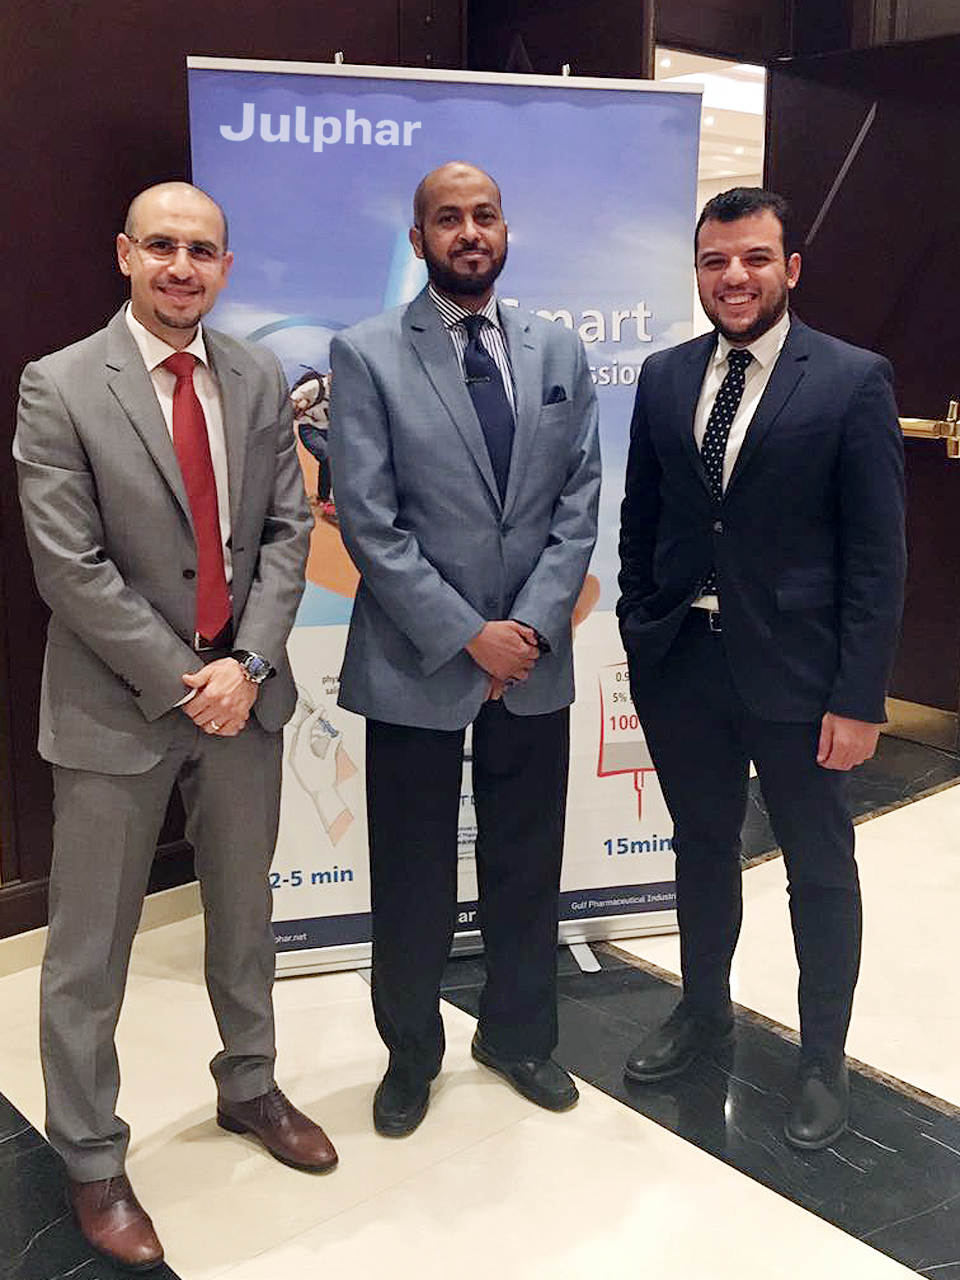 Julphar participates in a scientific lecture in Riyadh, KSA